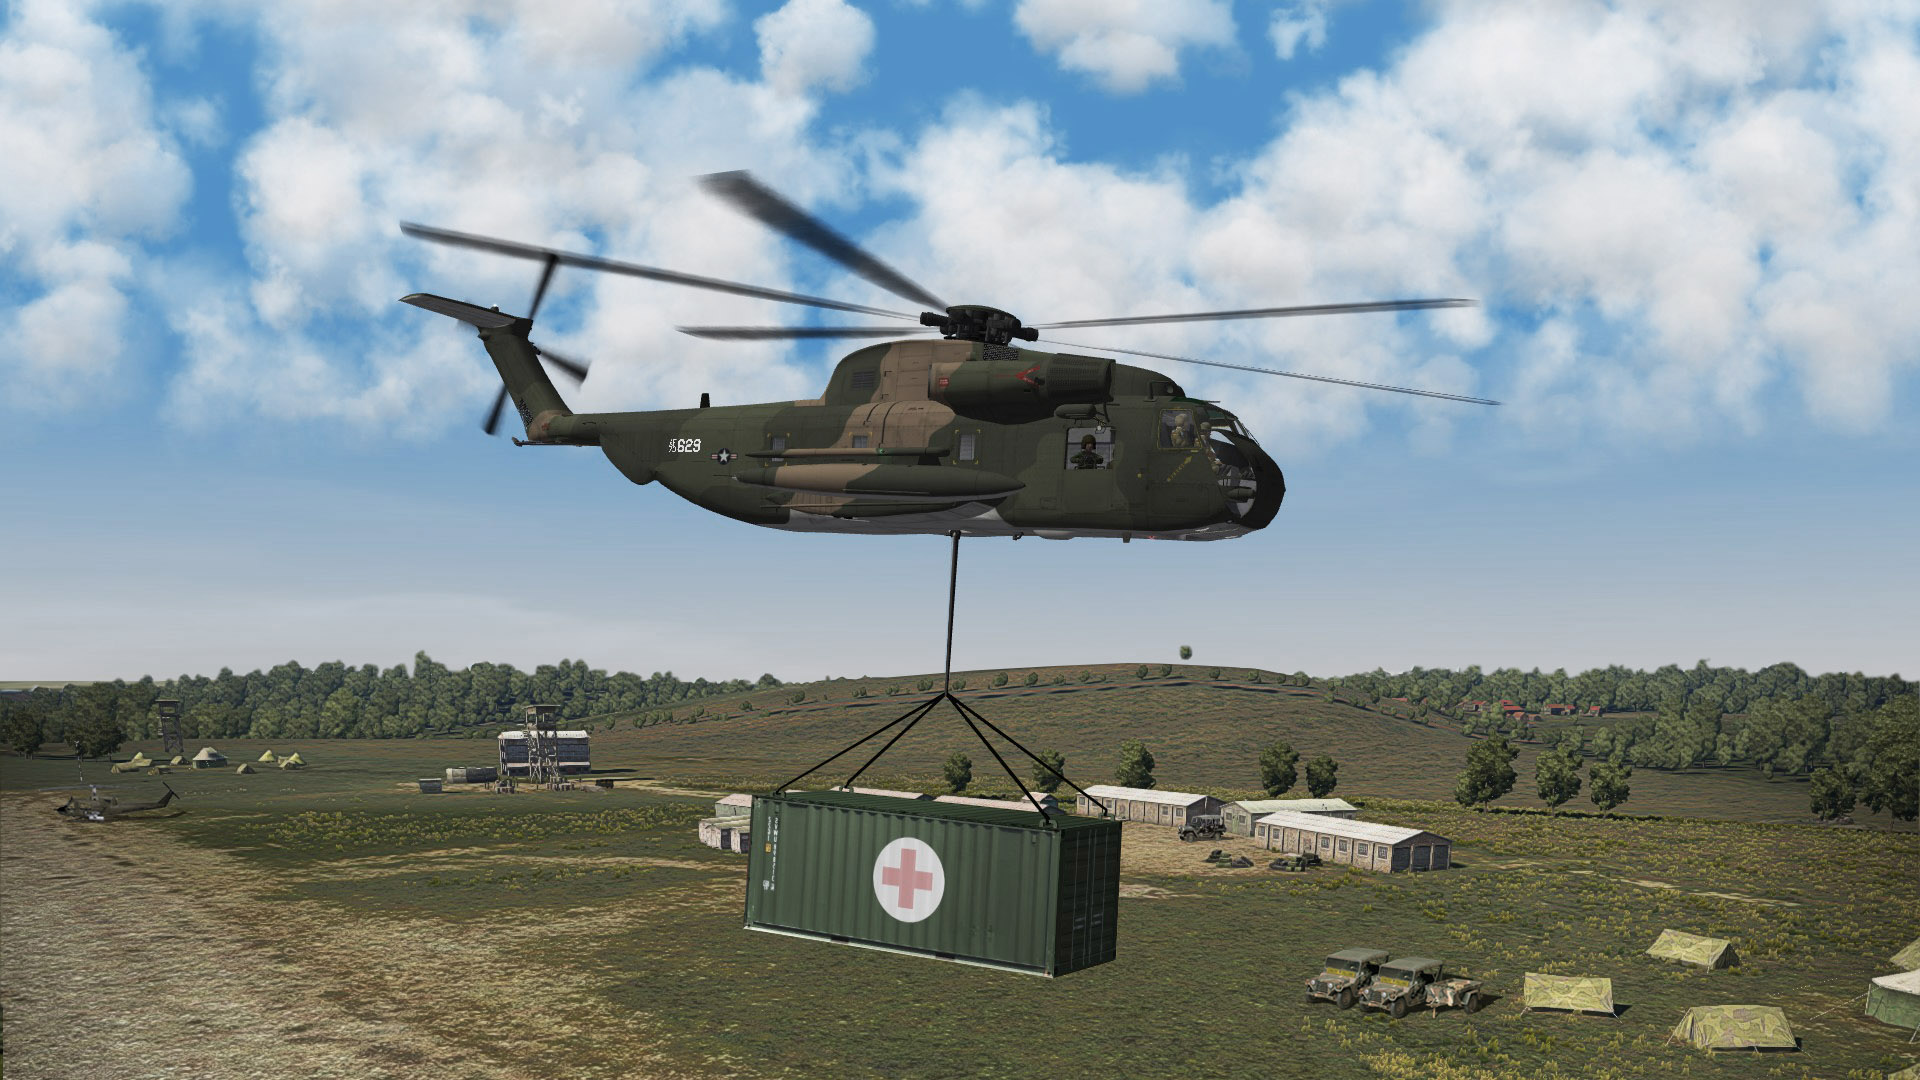 1968 CH53C airlifting container. W.Germany